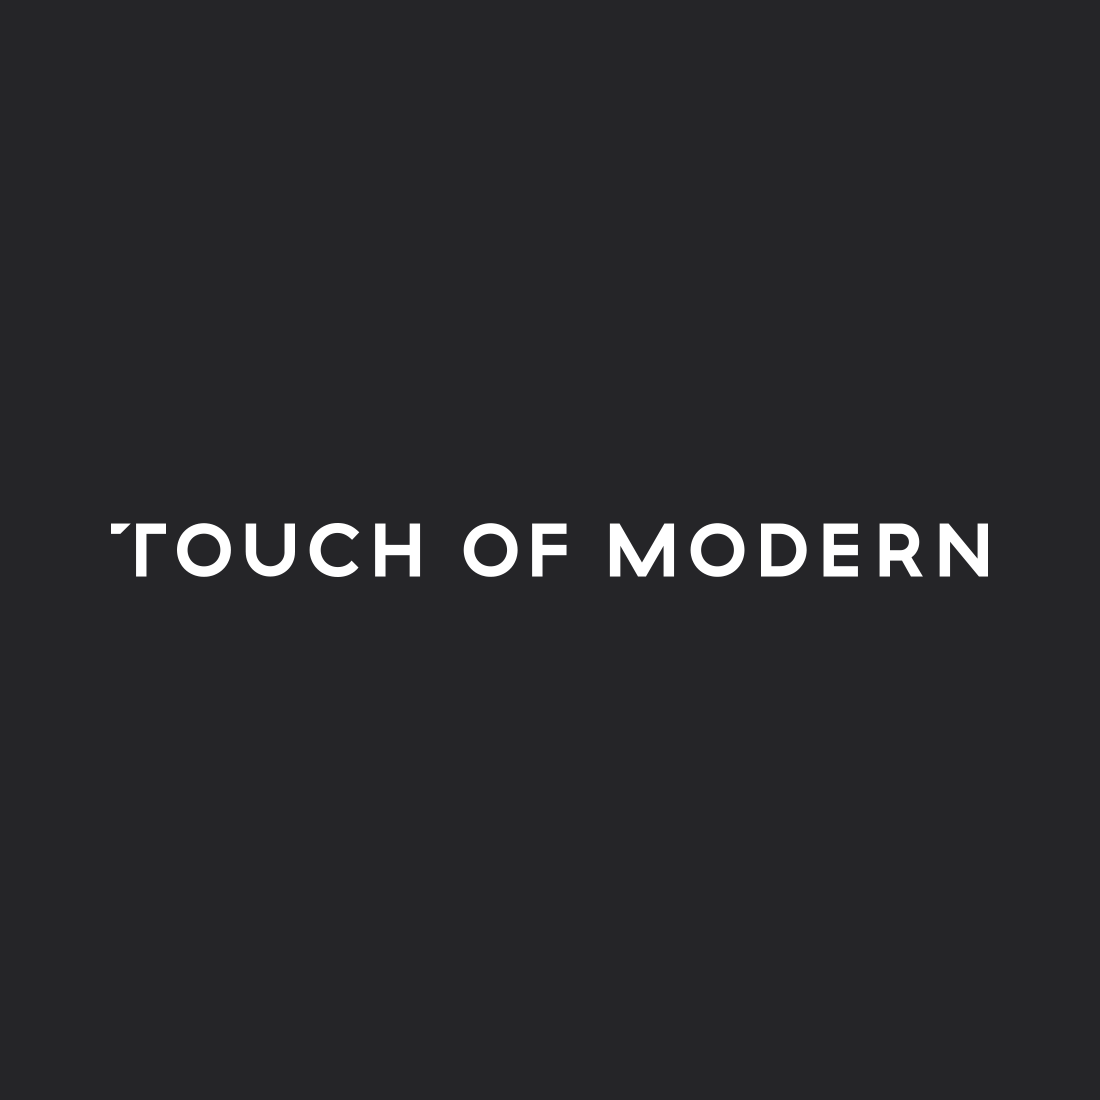 Up to 70% Off at TouchofModern including T-REX Tool. Ends March 16th 12PM PDT